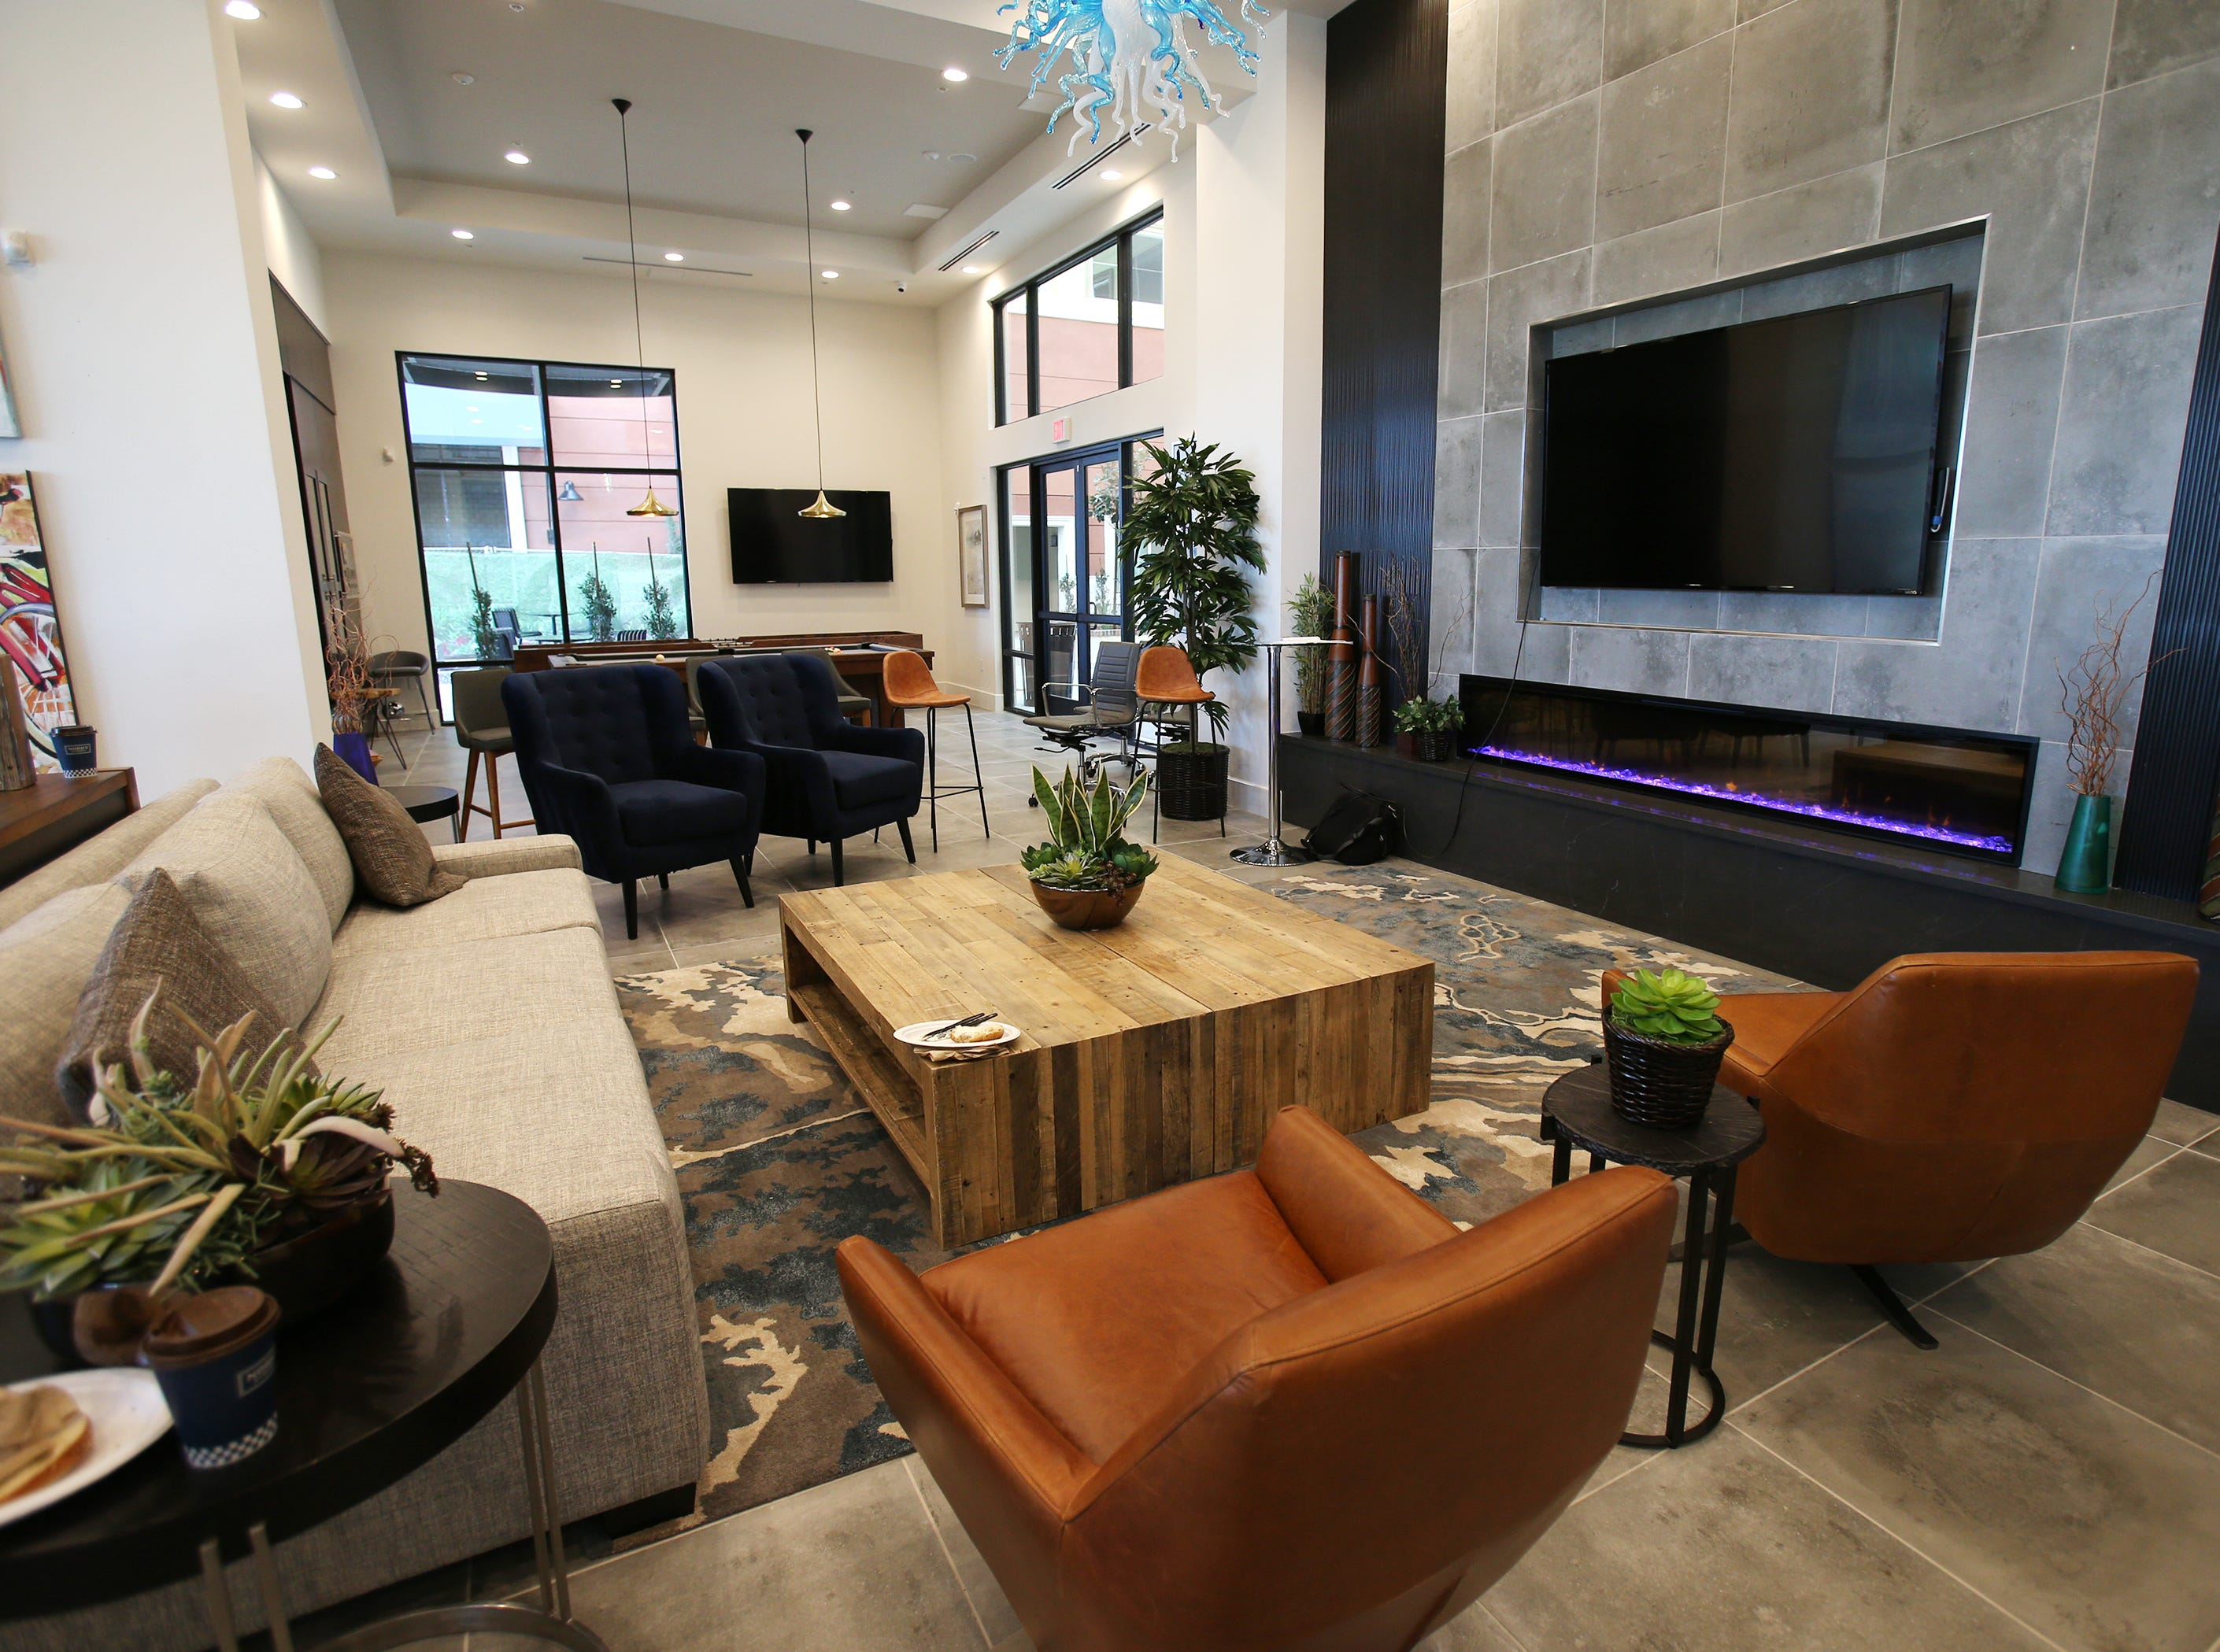 The Junction at Wagon Wheel apartment complex has a community room. It includes a meeting room, a kitchen area and a pool table.